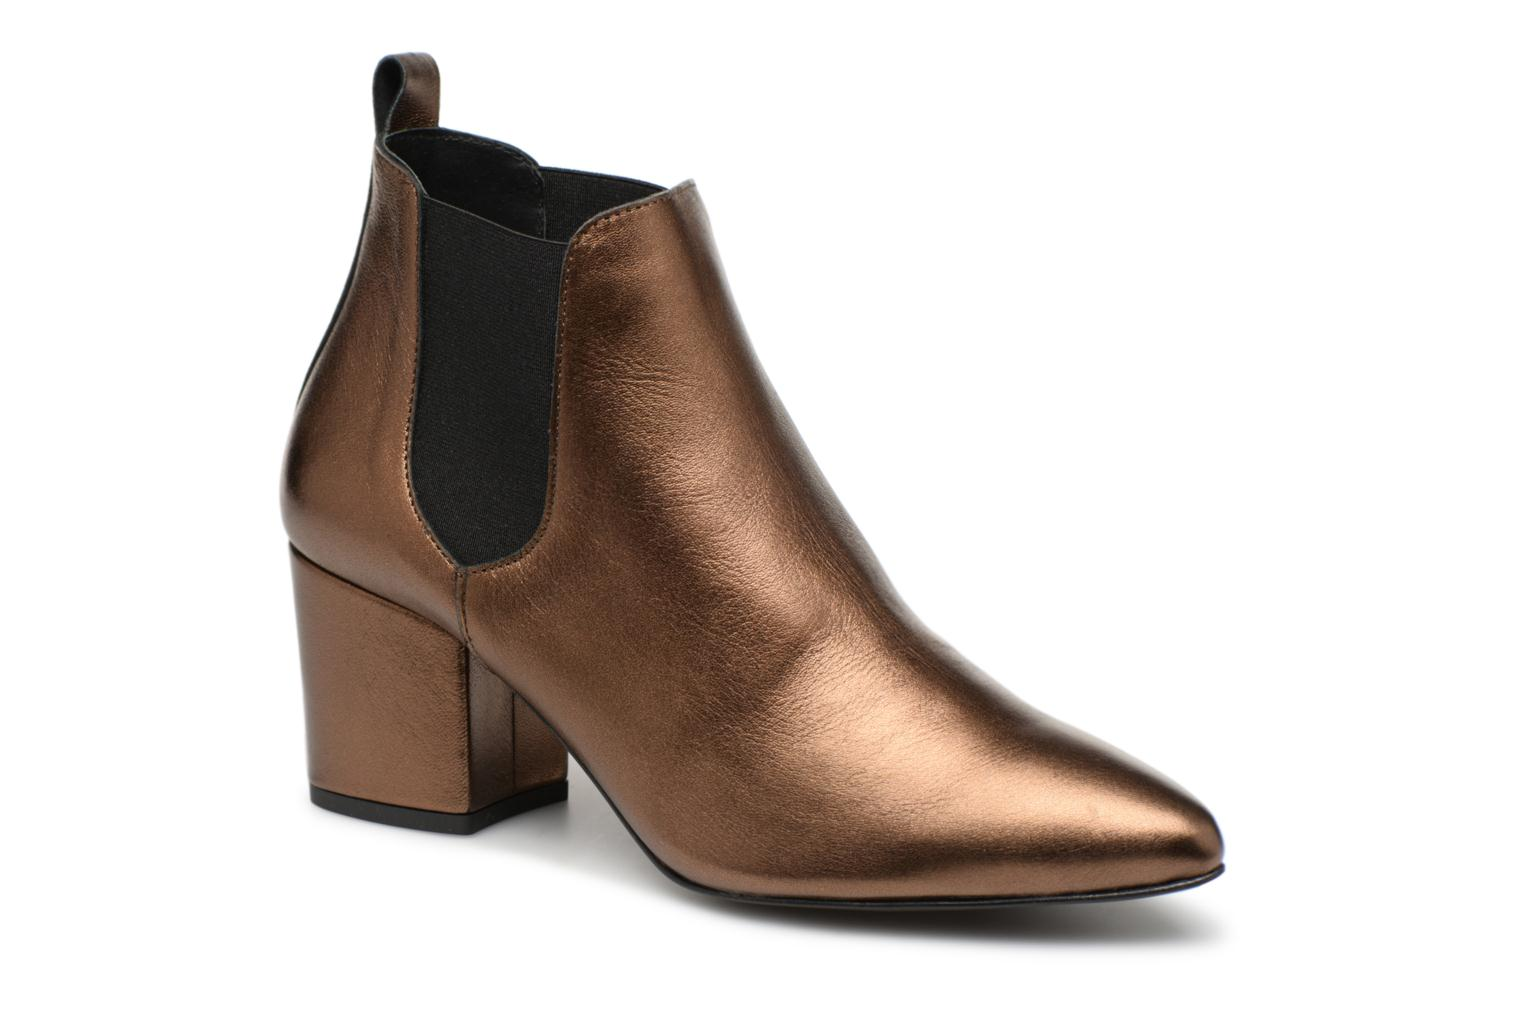 VmNice leather boot par Vero Moda